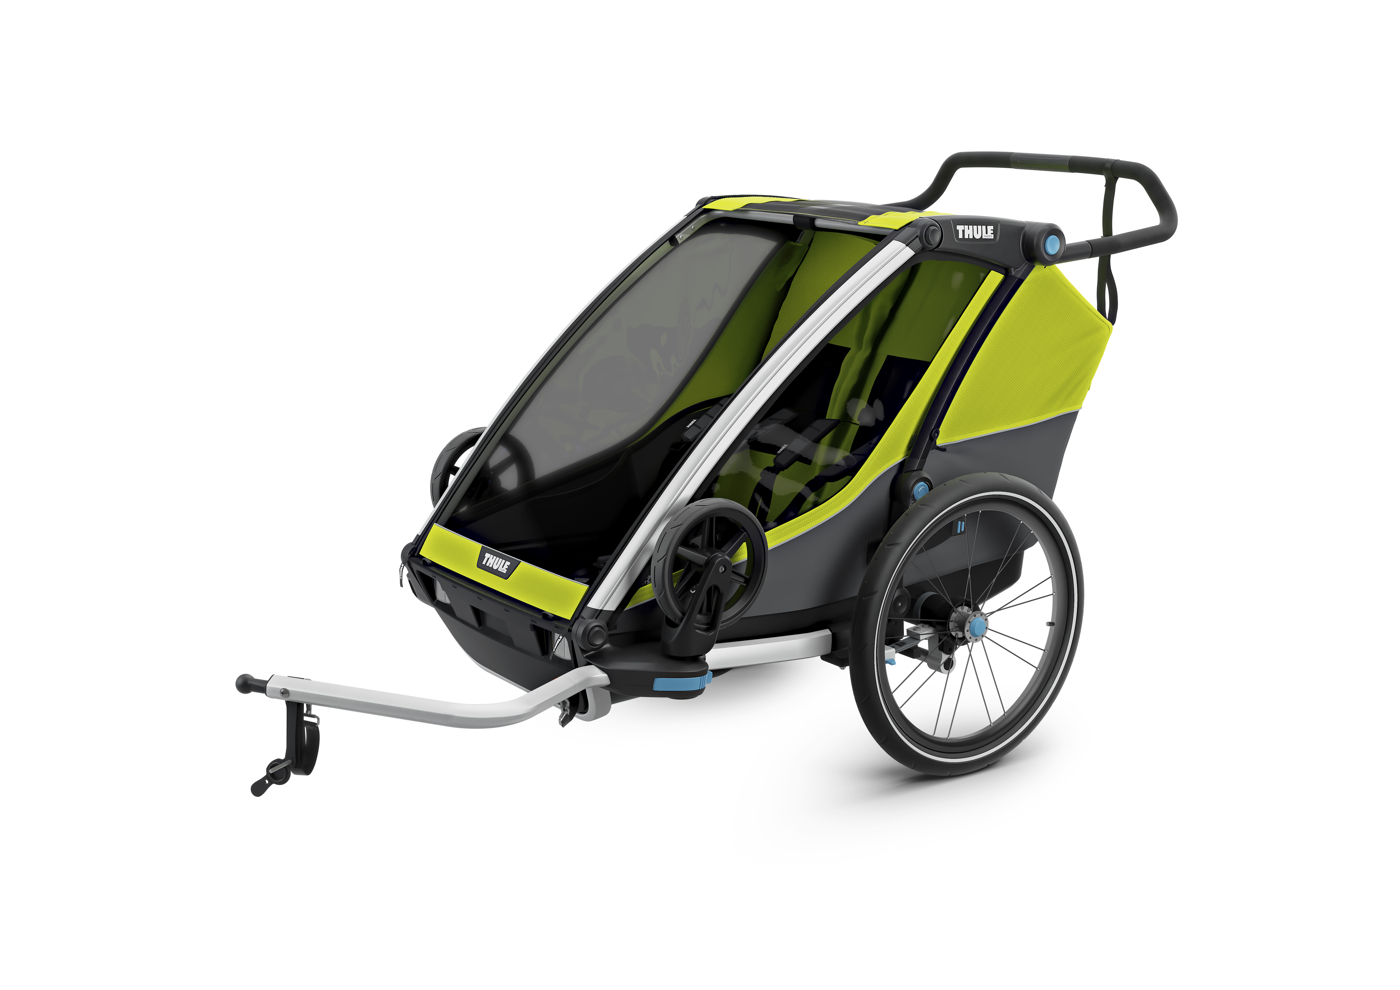 Thule_Chariot_Cab2_Chartreuse_Cycling_ISO_10204001